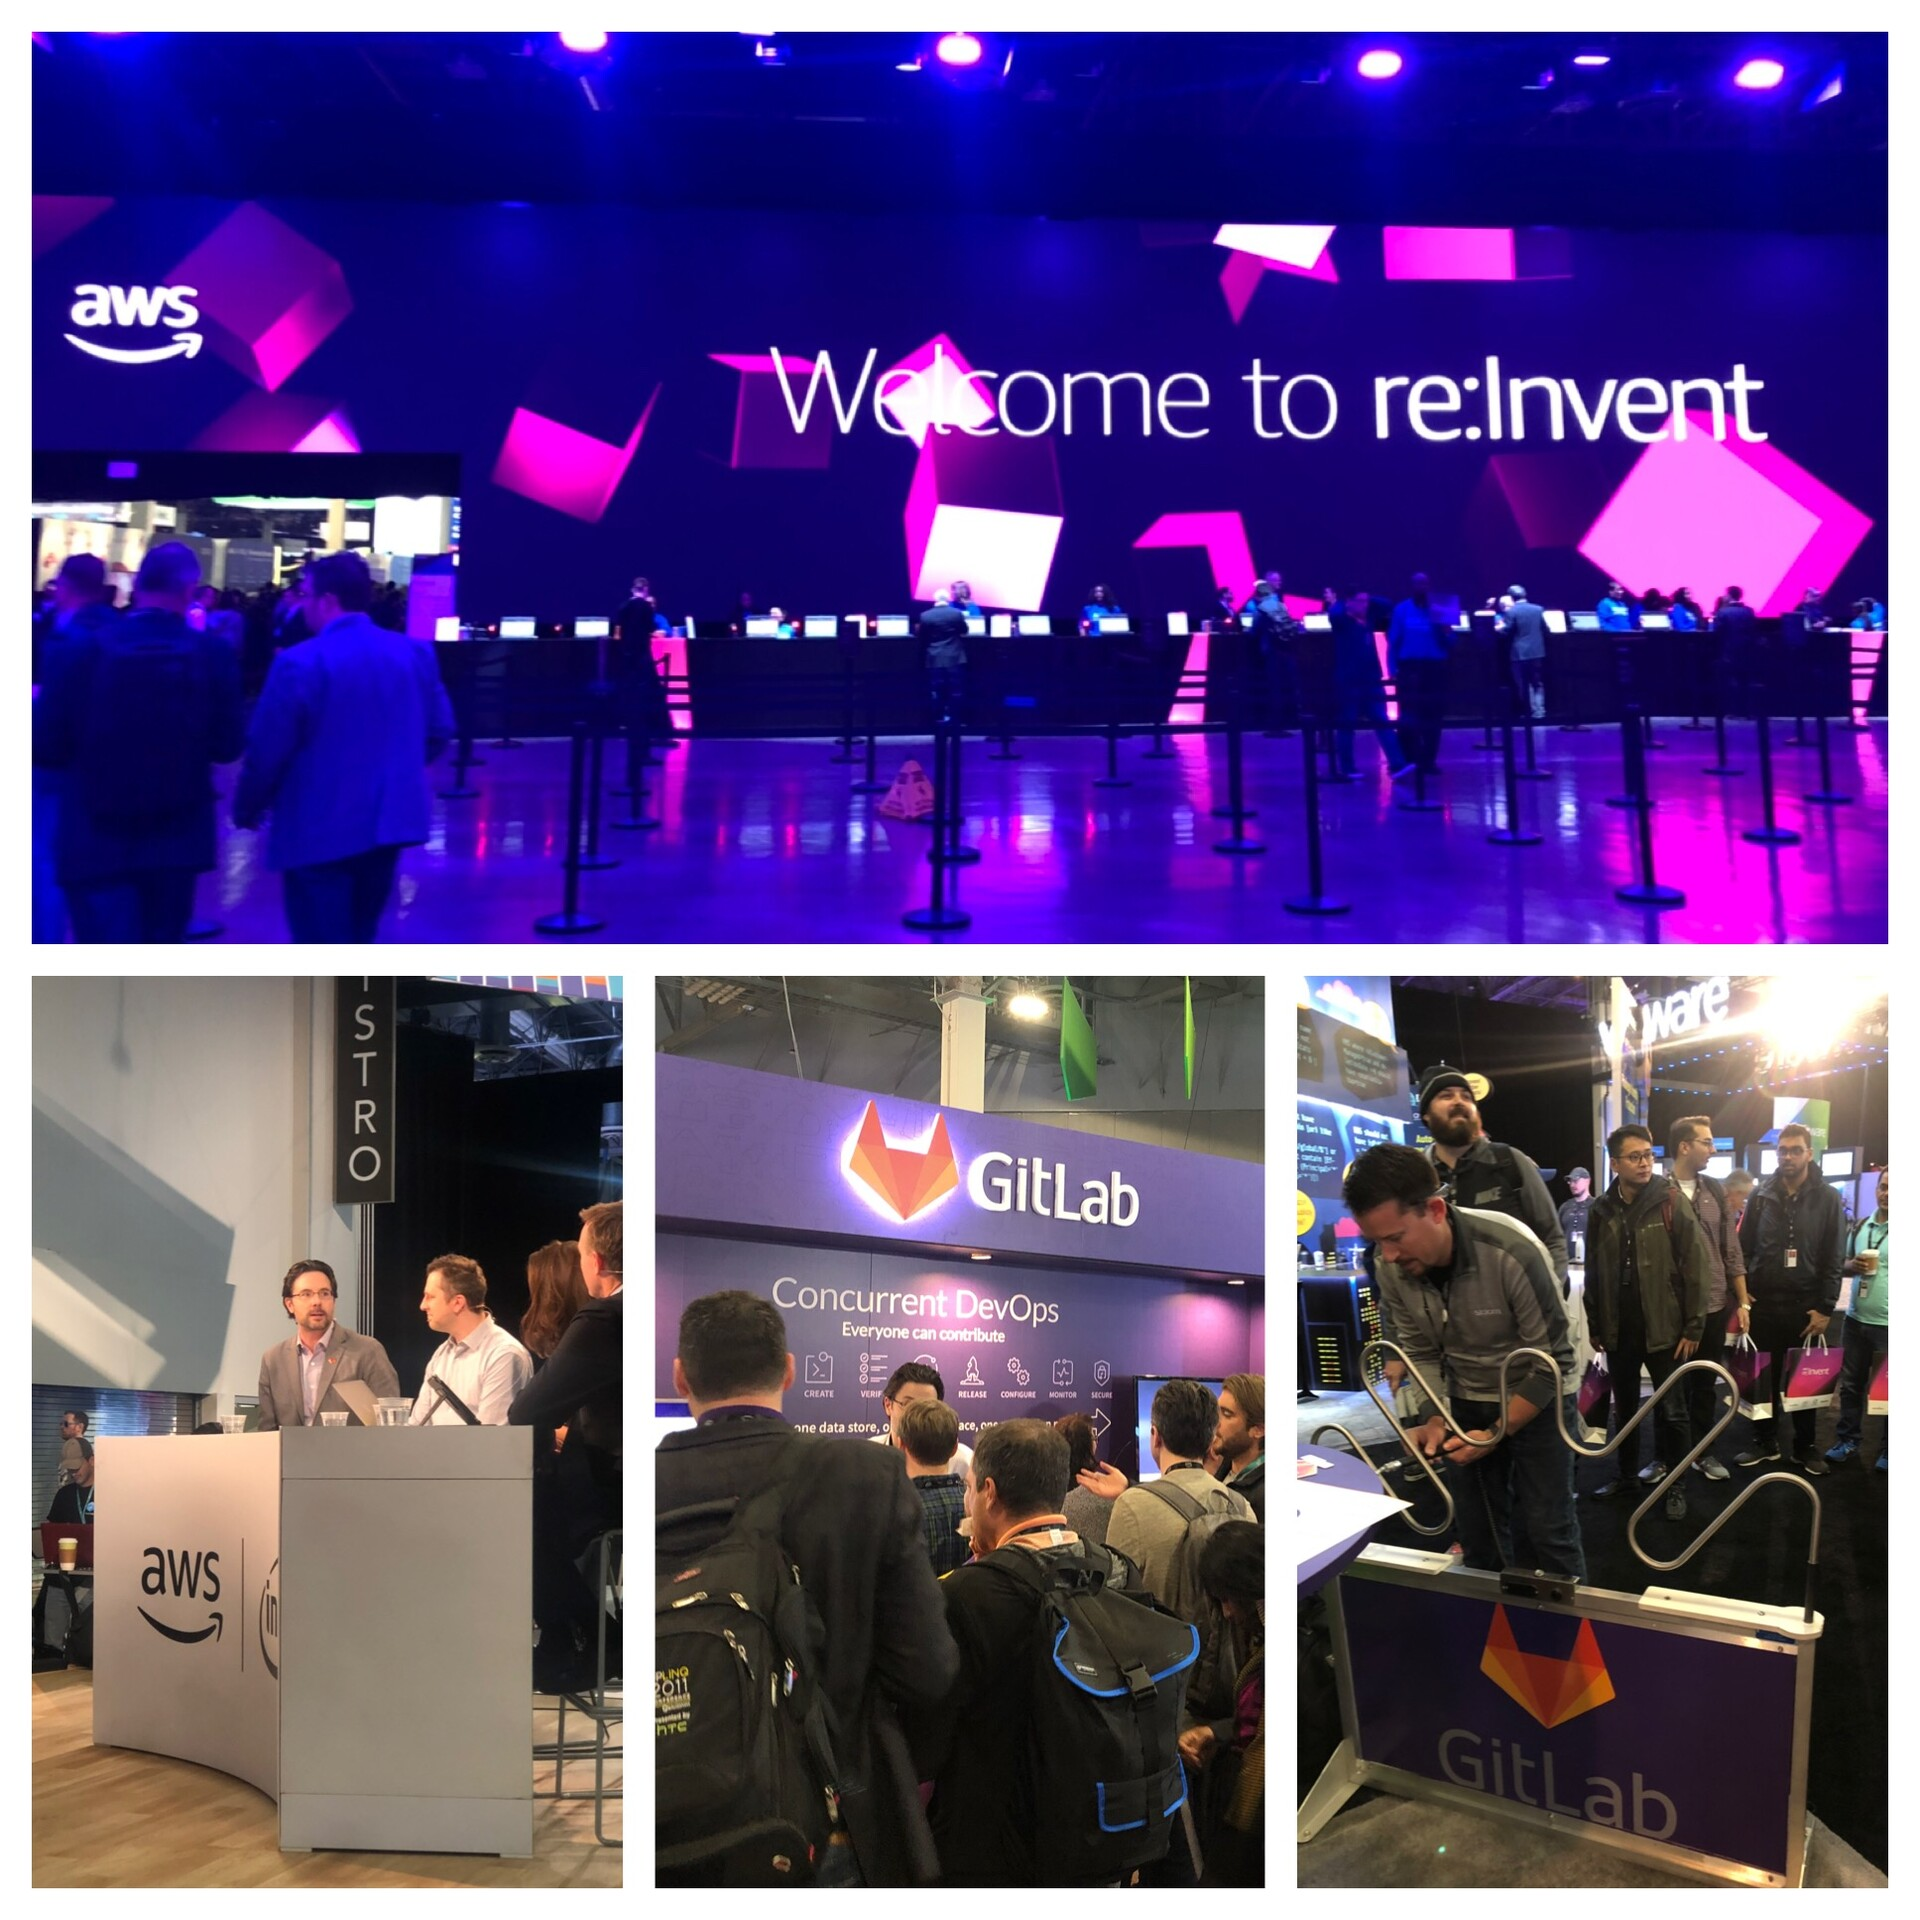 Collage from GitLab at AWS re:Invent